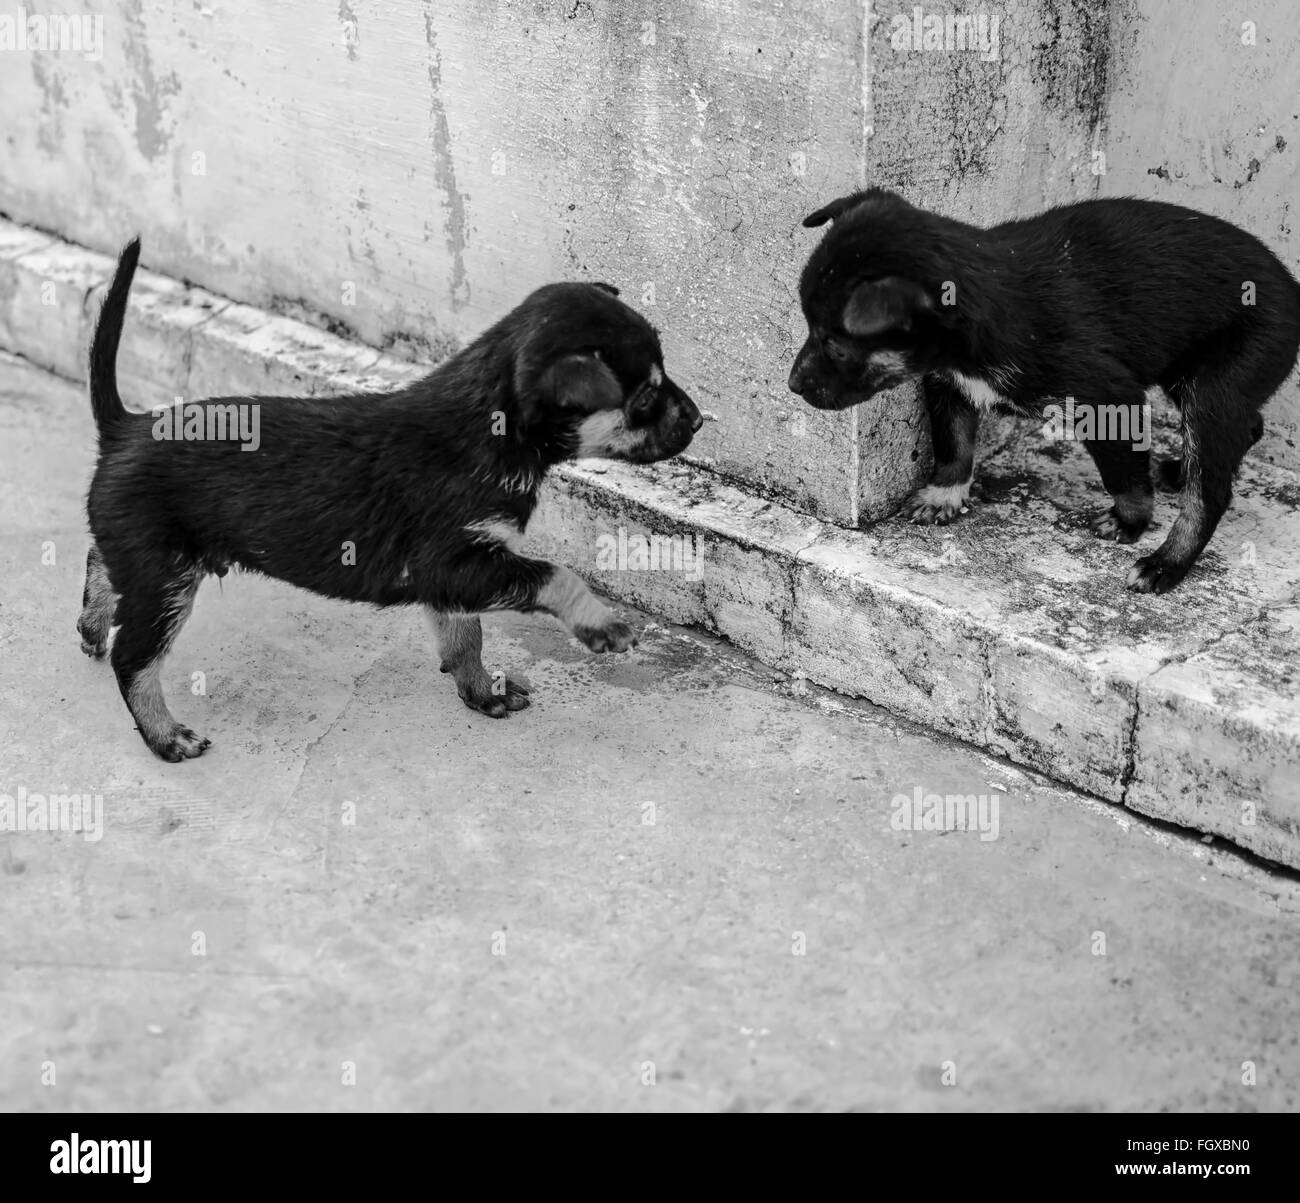 A meeting between puppies - Stock Image